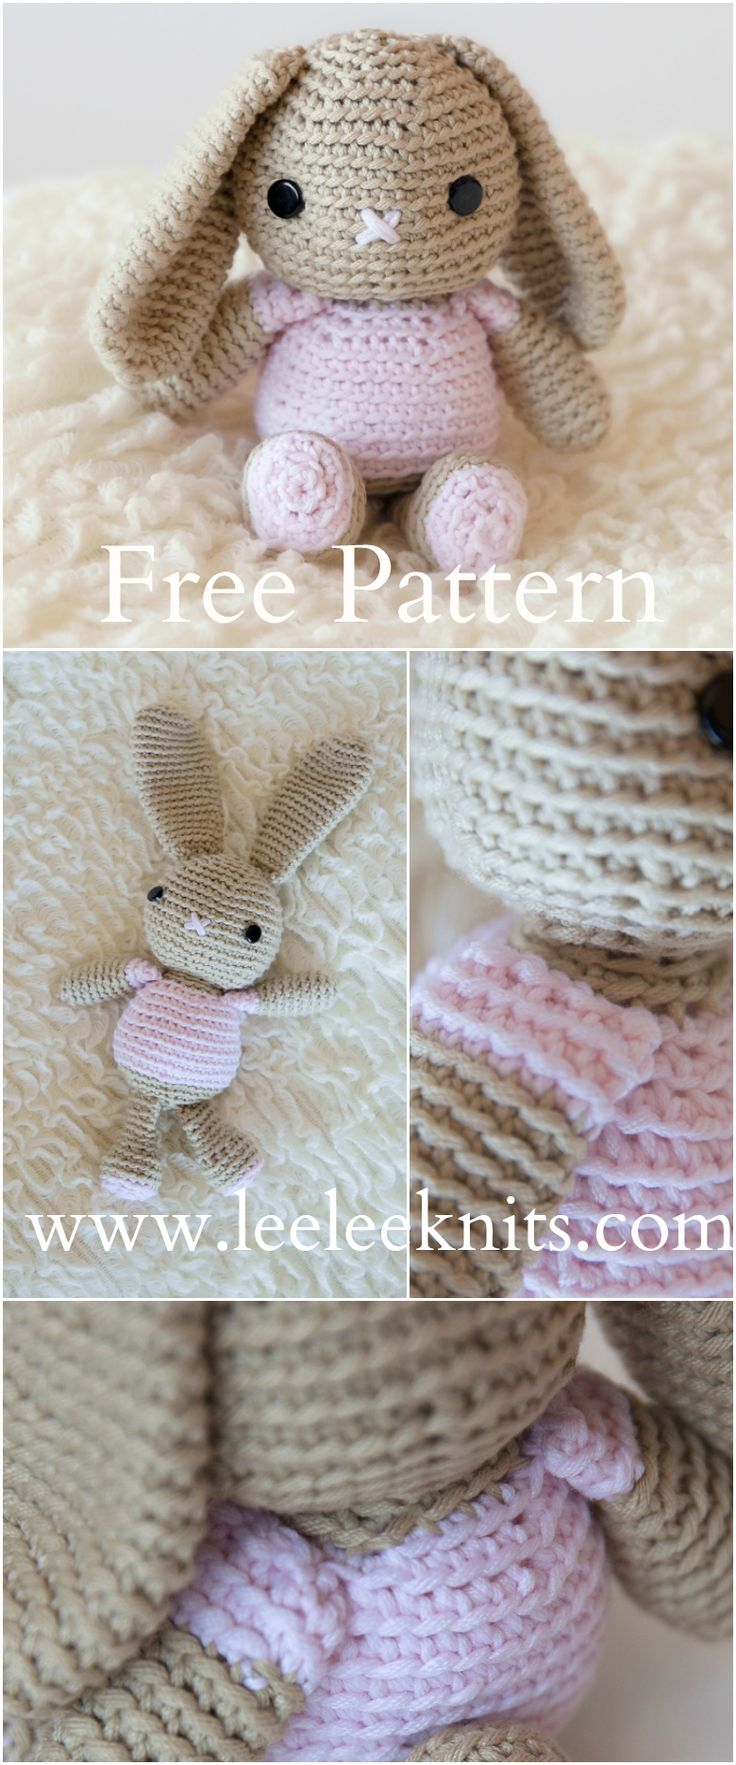 Adorable and Free Crochet Bunny Pattern ☂ᙓᖇᗴᔕᗩ ᖇᙓᔕ☂ᙓᘐᘎᓮ http://www.pinterest.com/teretegui